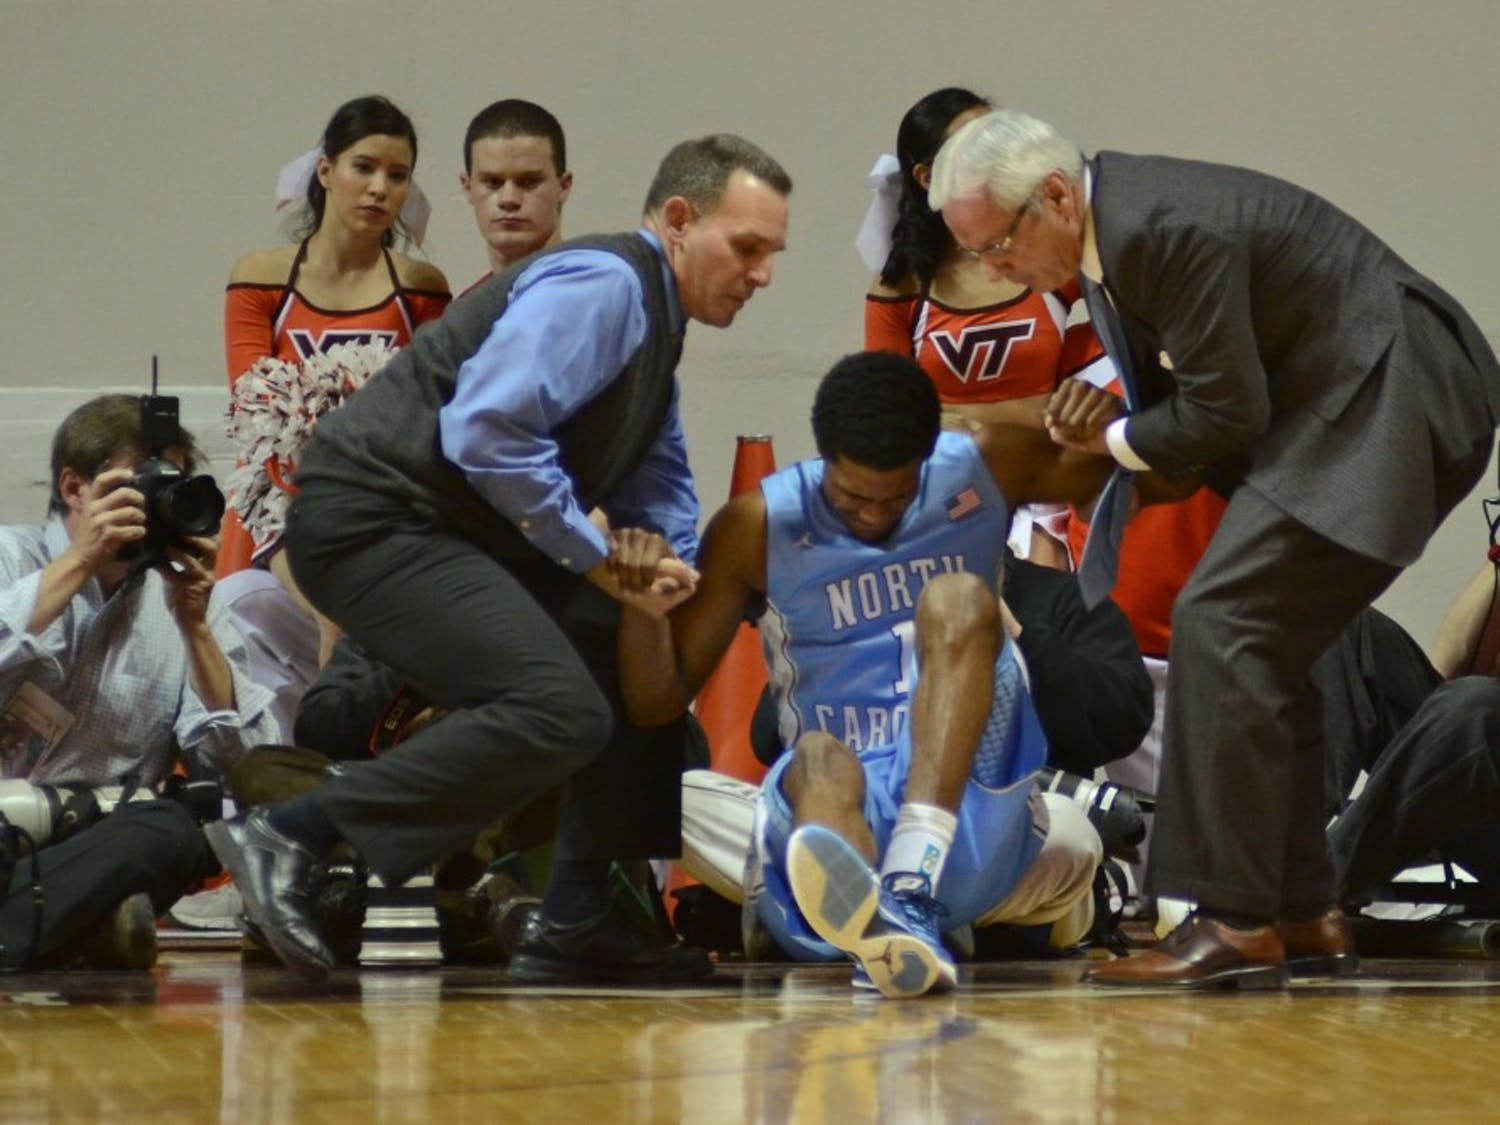 Carolina guard Dexter Strickland was helped up by head coach Roy Williams and head athletic trainer Chris Hirth in the second half of Carolina's 82-68 win over Virginia Tech Thursday night in Cassell Coliseum.